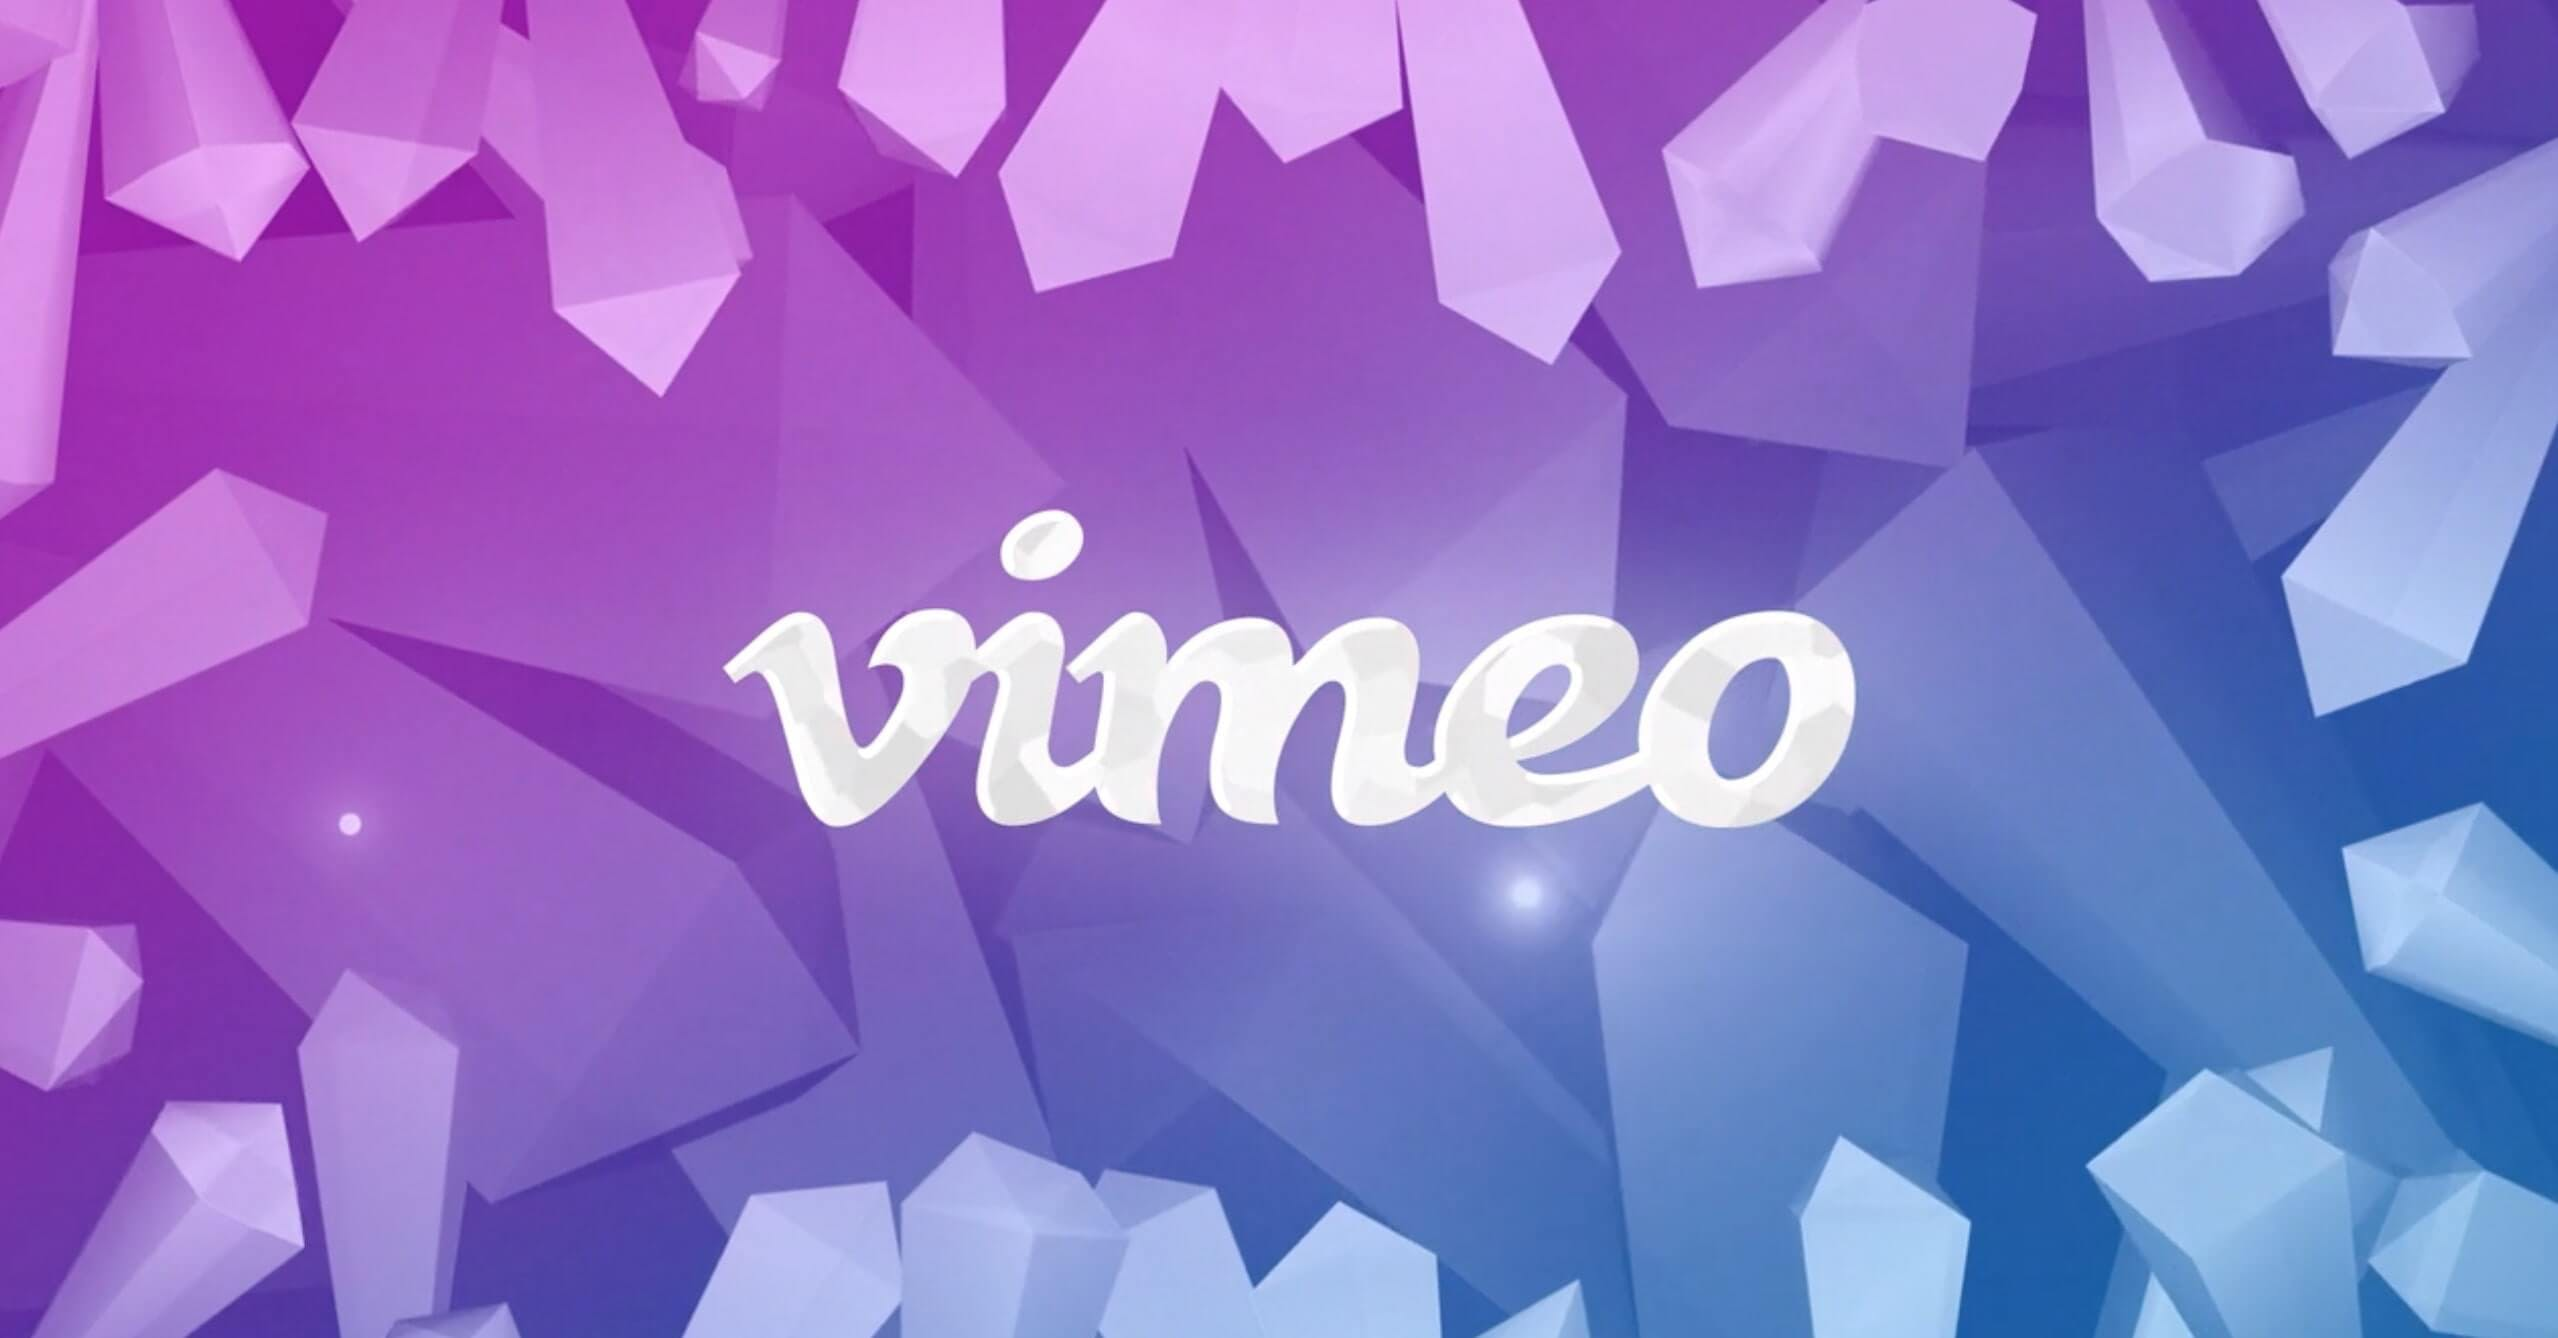 How to Convert Vimeo Videos to MP4?